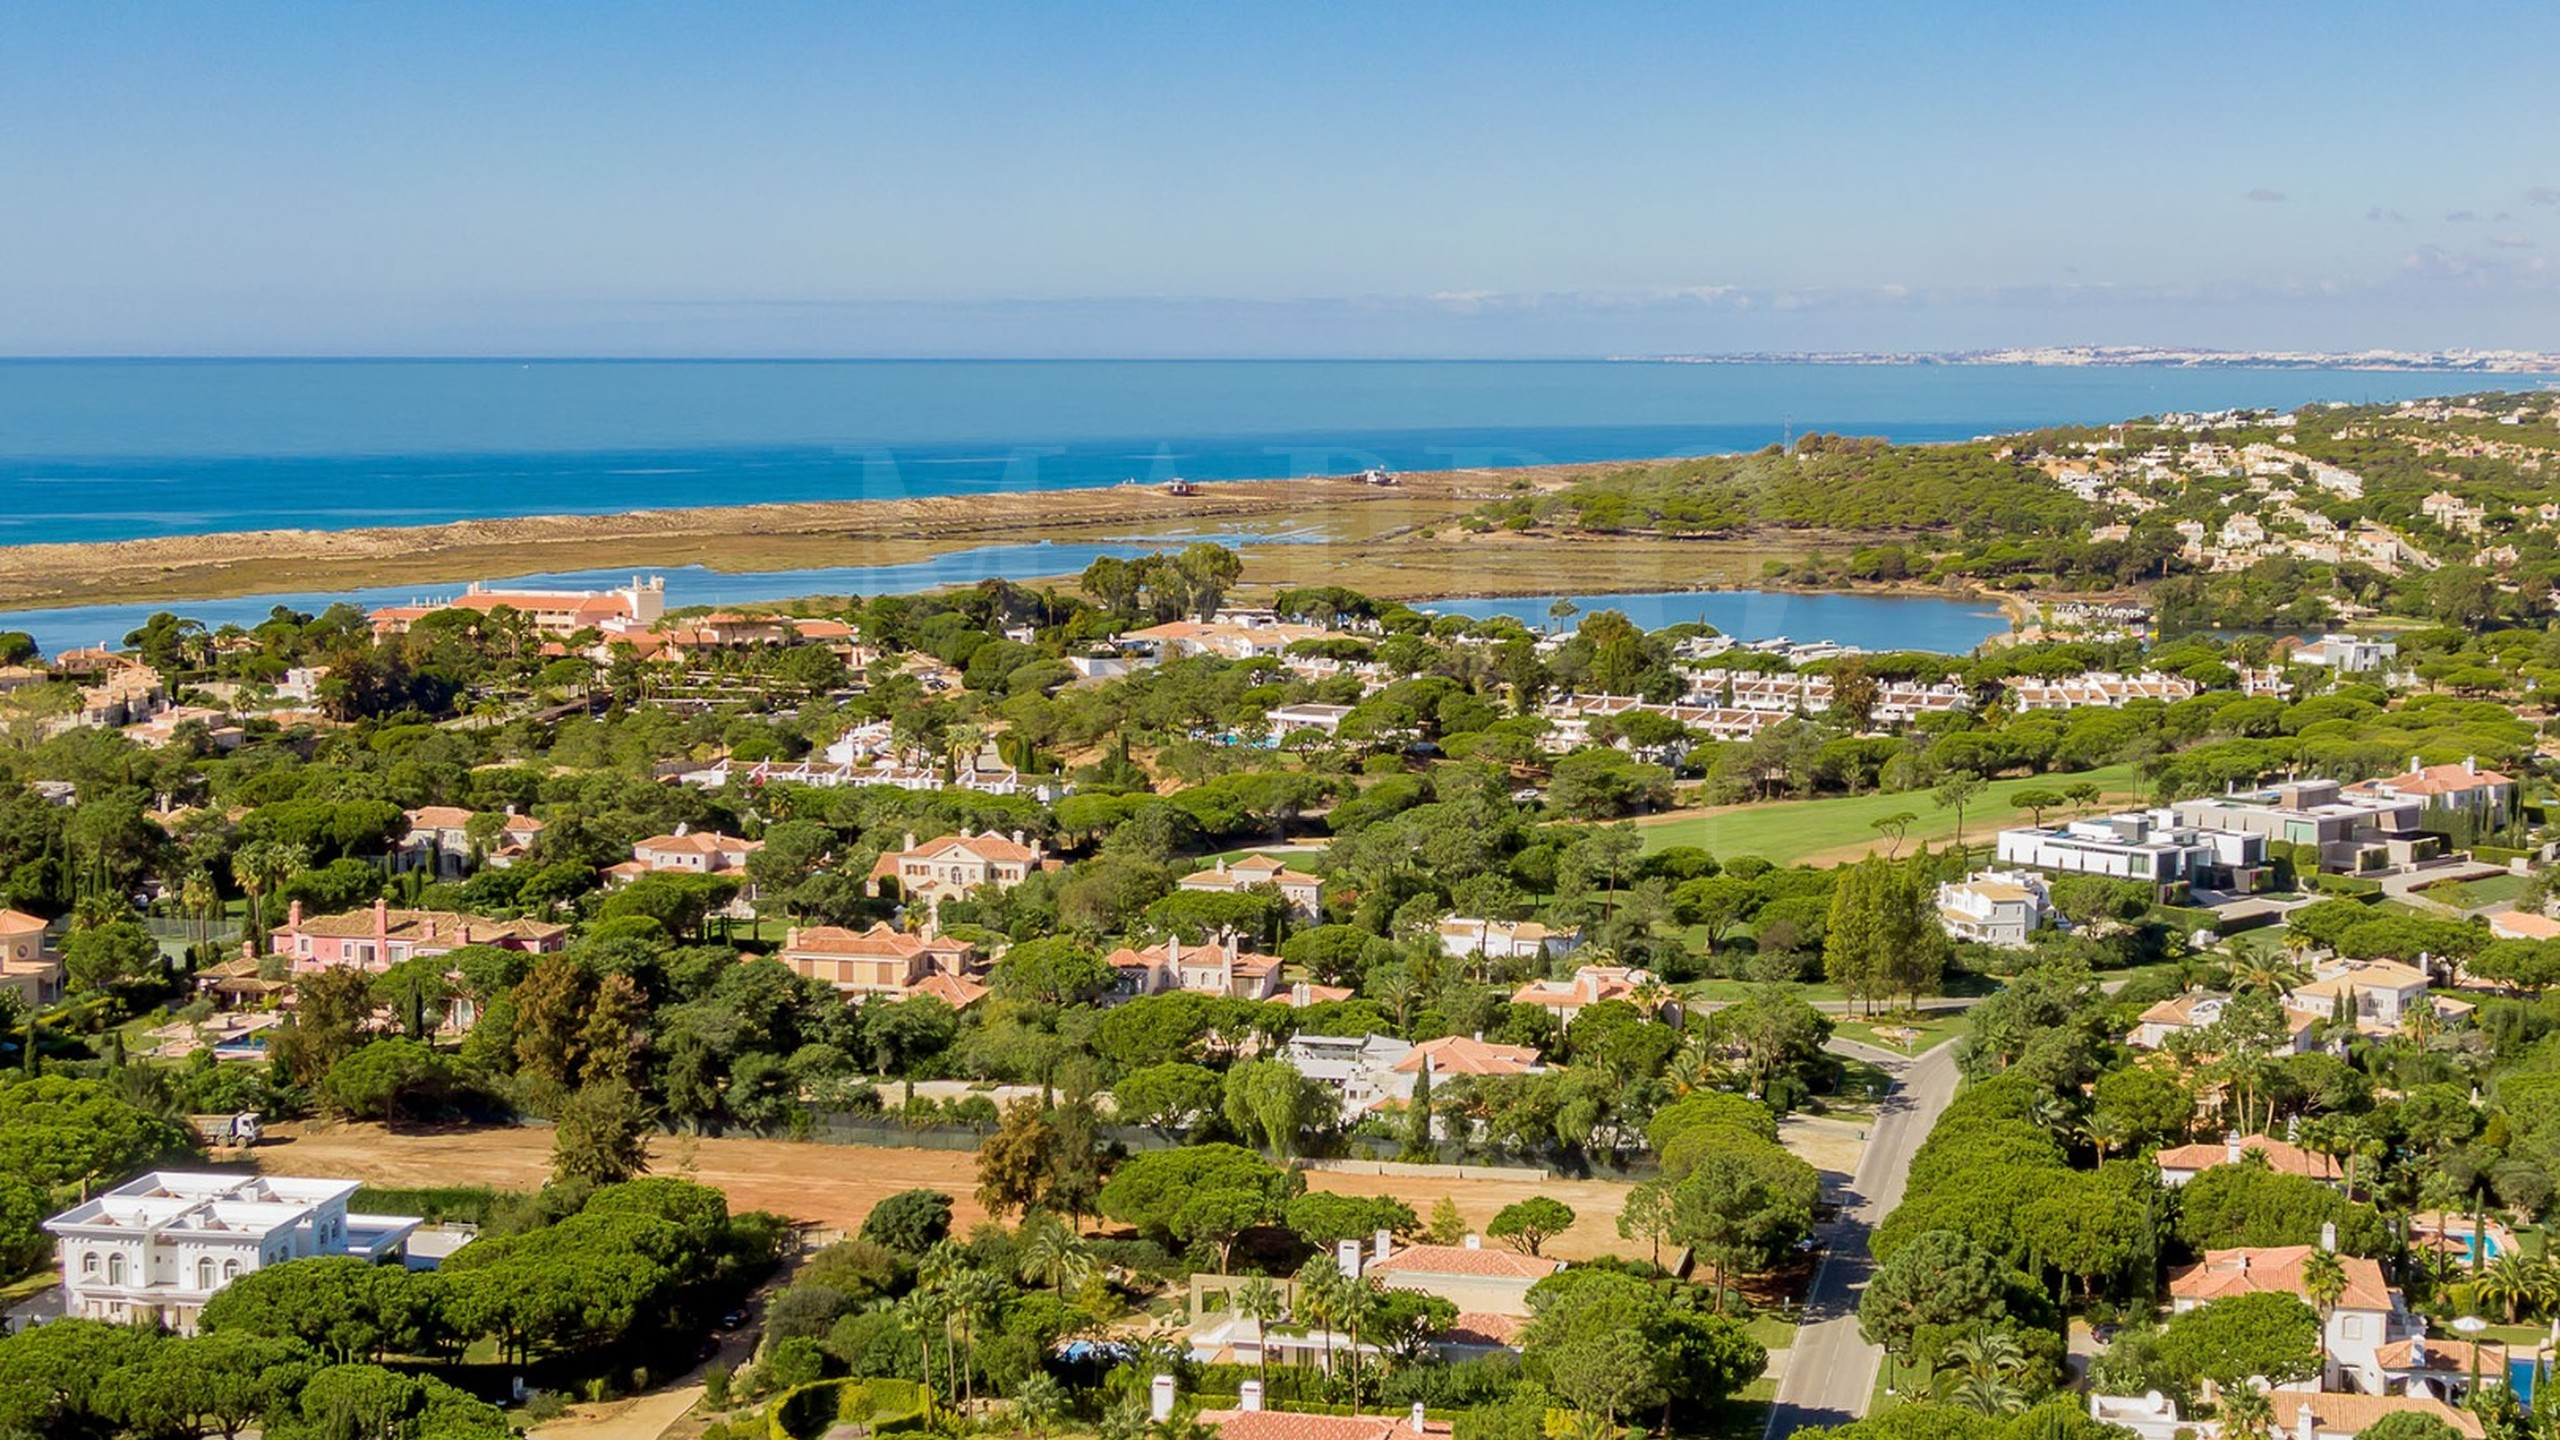 Plot for sale in Quinta do Lago near the sea